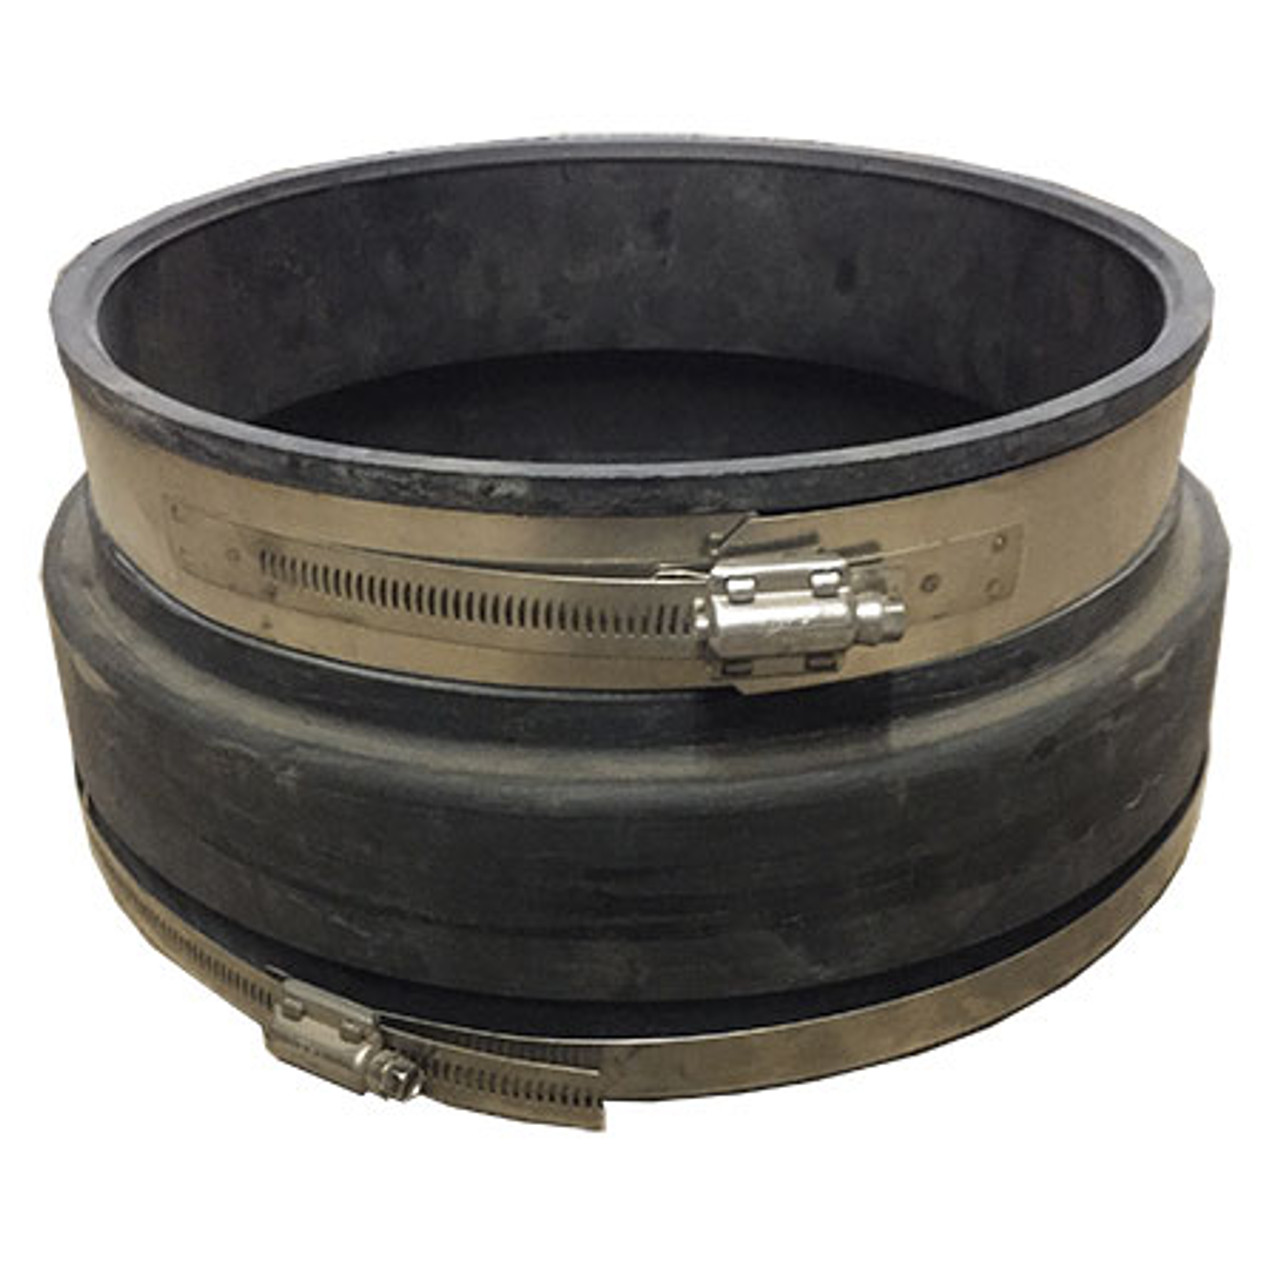 240-250/260-285 Structural Walled Pipe Drainage Adaptor